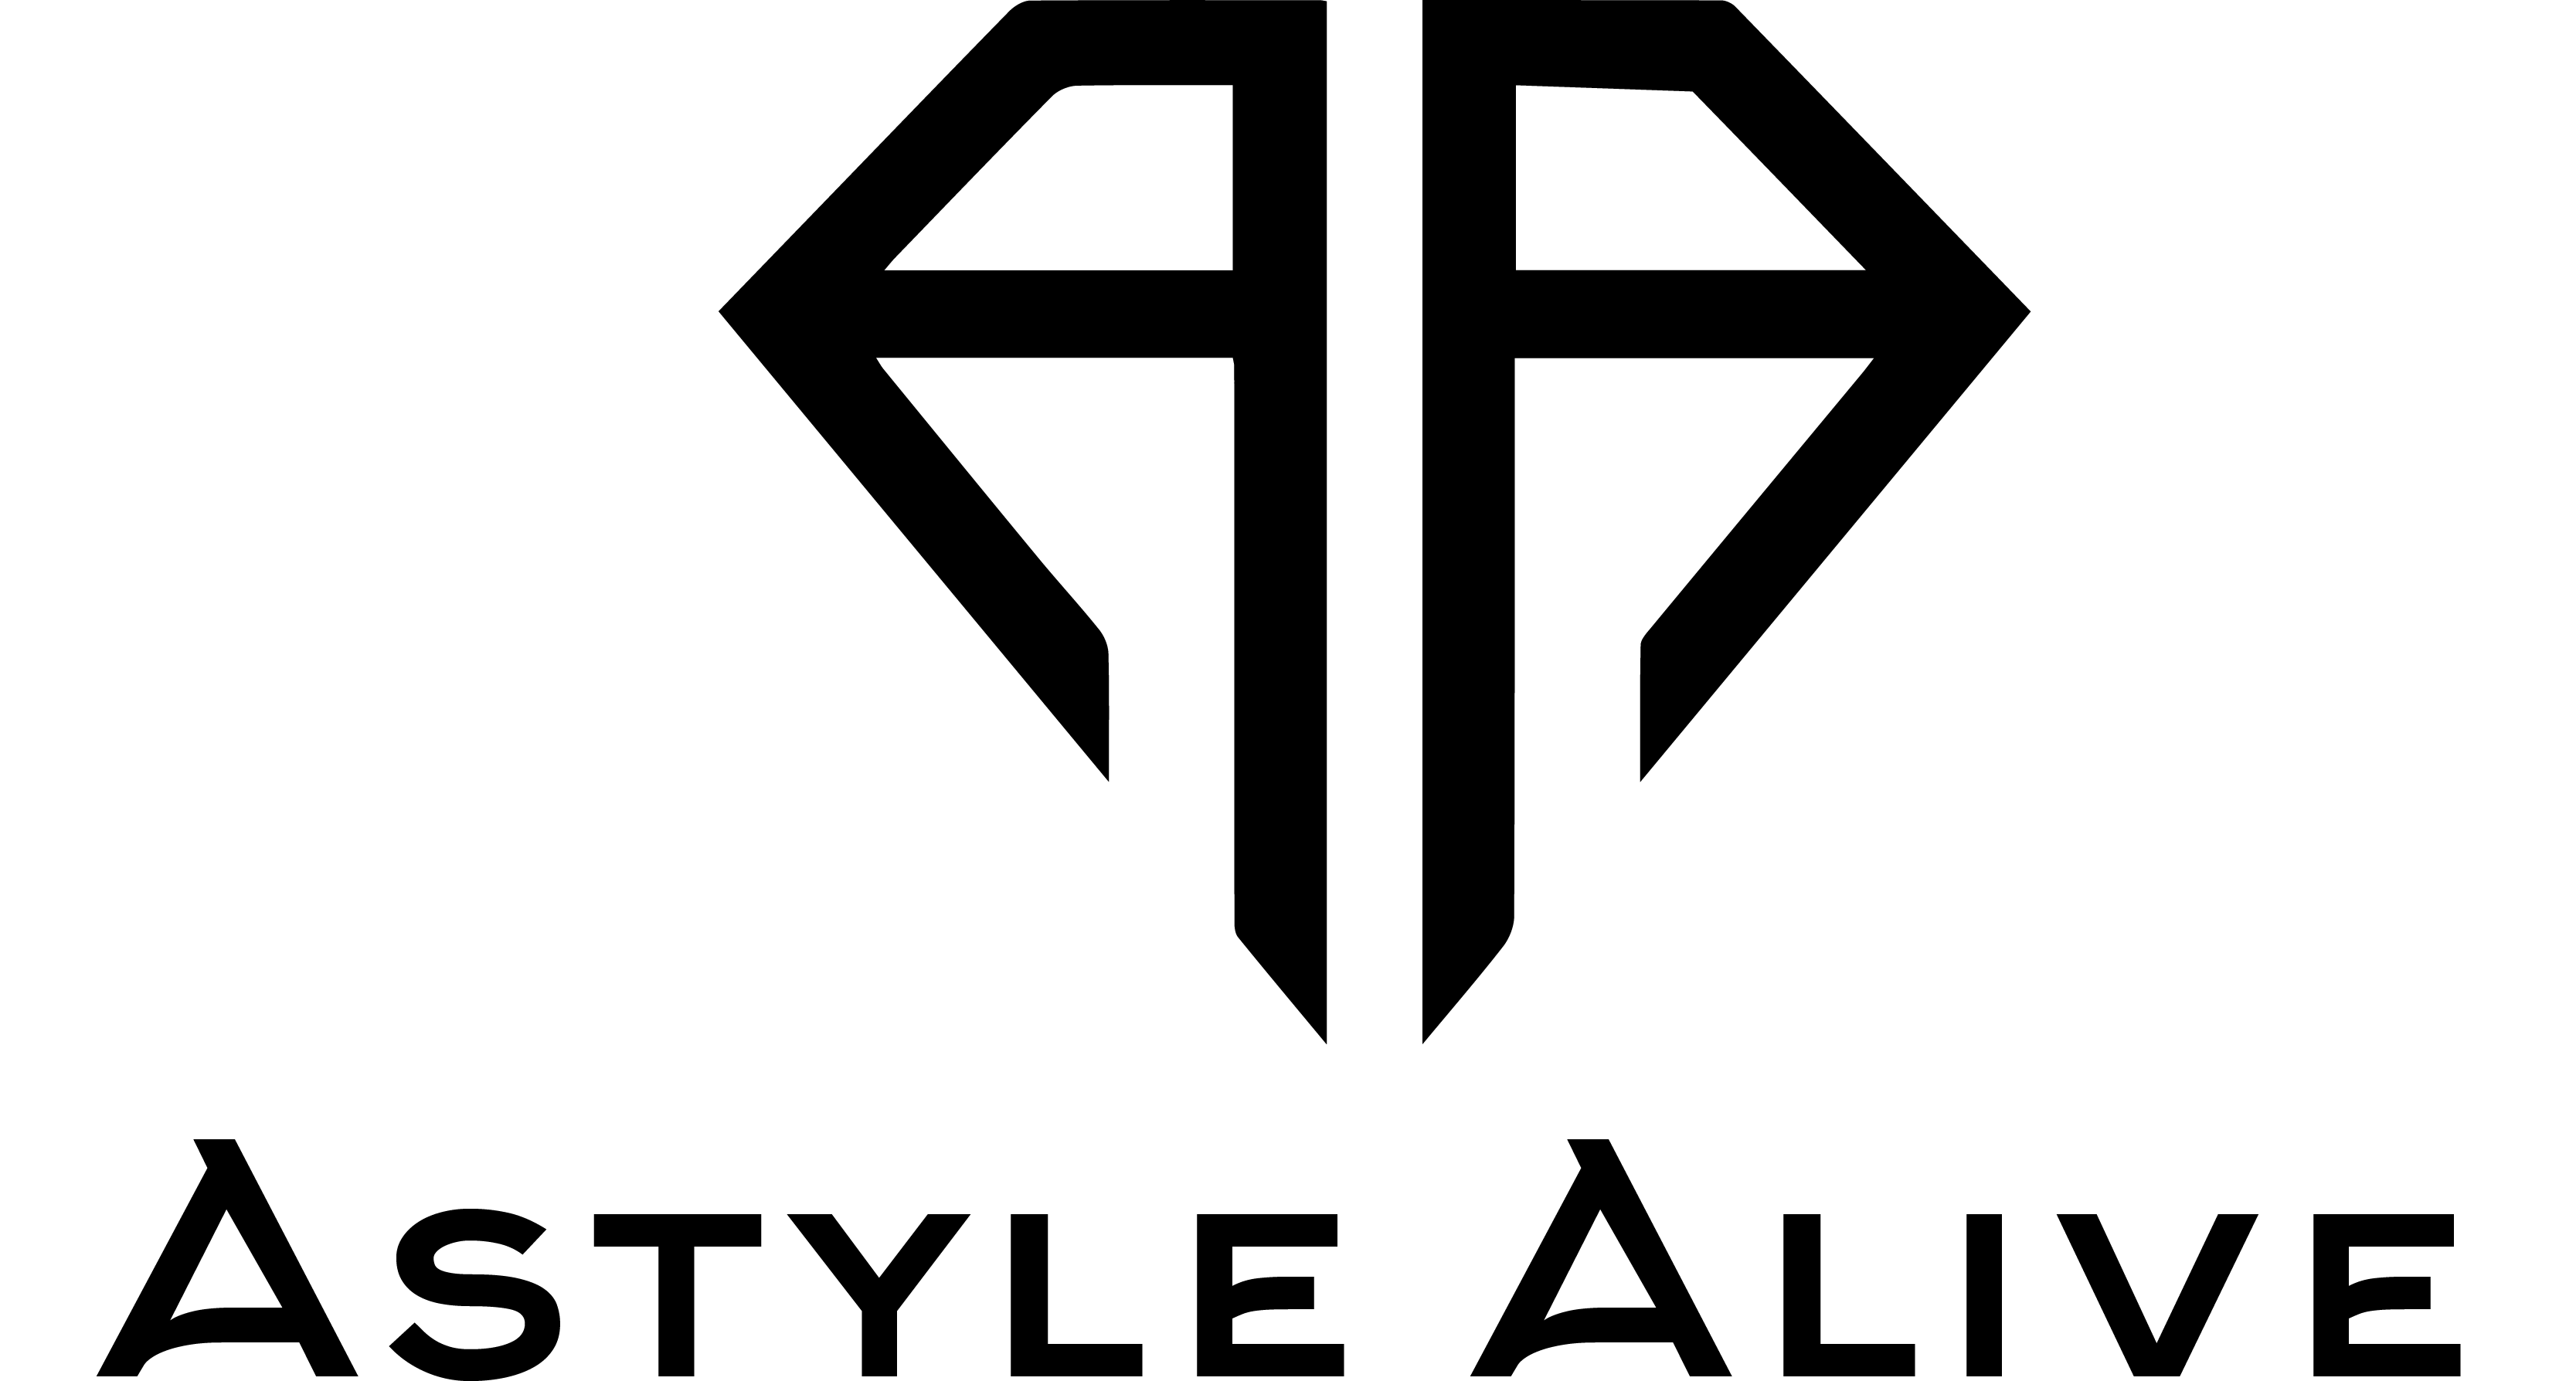 Alec_martin-delayno-de_layno-astylealive-try_tranquil_cbd-tranquilcbd-entrepreneur-try_tranquil-tranquil_store-cbd_by_tranquil-astyle_alive-alecmartin- try_tranquil_store-cannabis-logo-athlete-fitness-professional-health_wellness_experts-cbd-oil-cbd-cream-cbd-topical-cbd-edibles-cbd-gummies-sports-training-workout- recovery-toothpicks-floyd_mayweather-credit-repair-credit_is_a_must